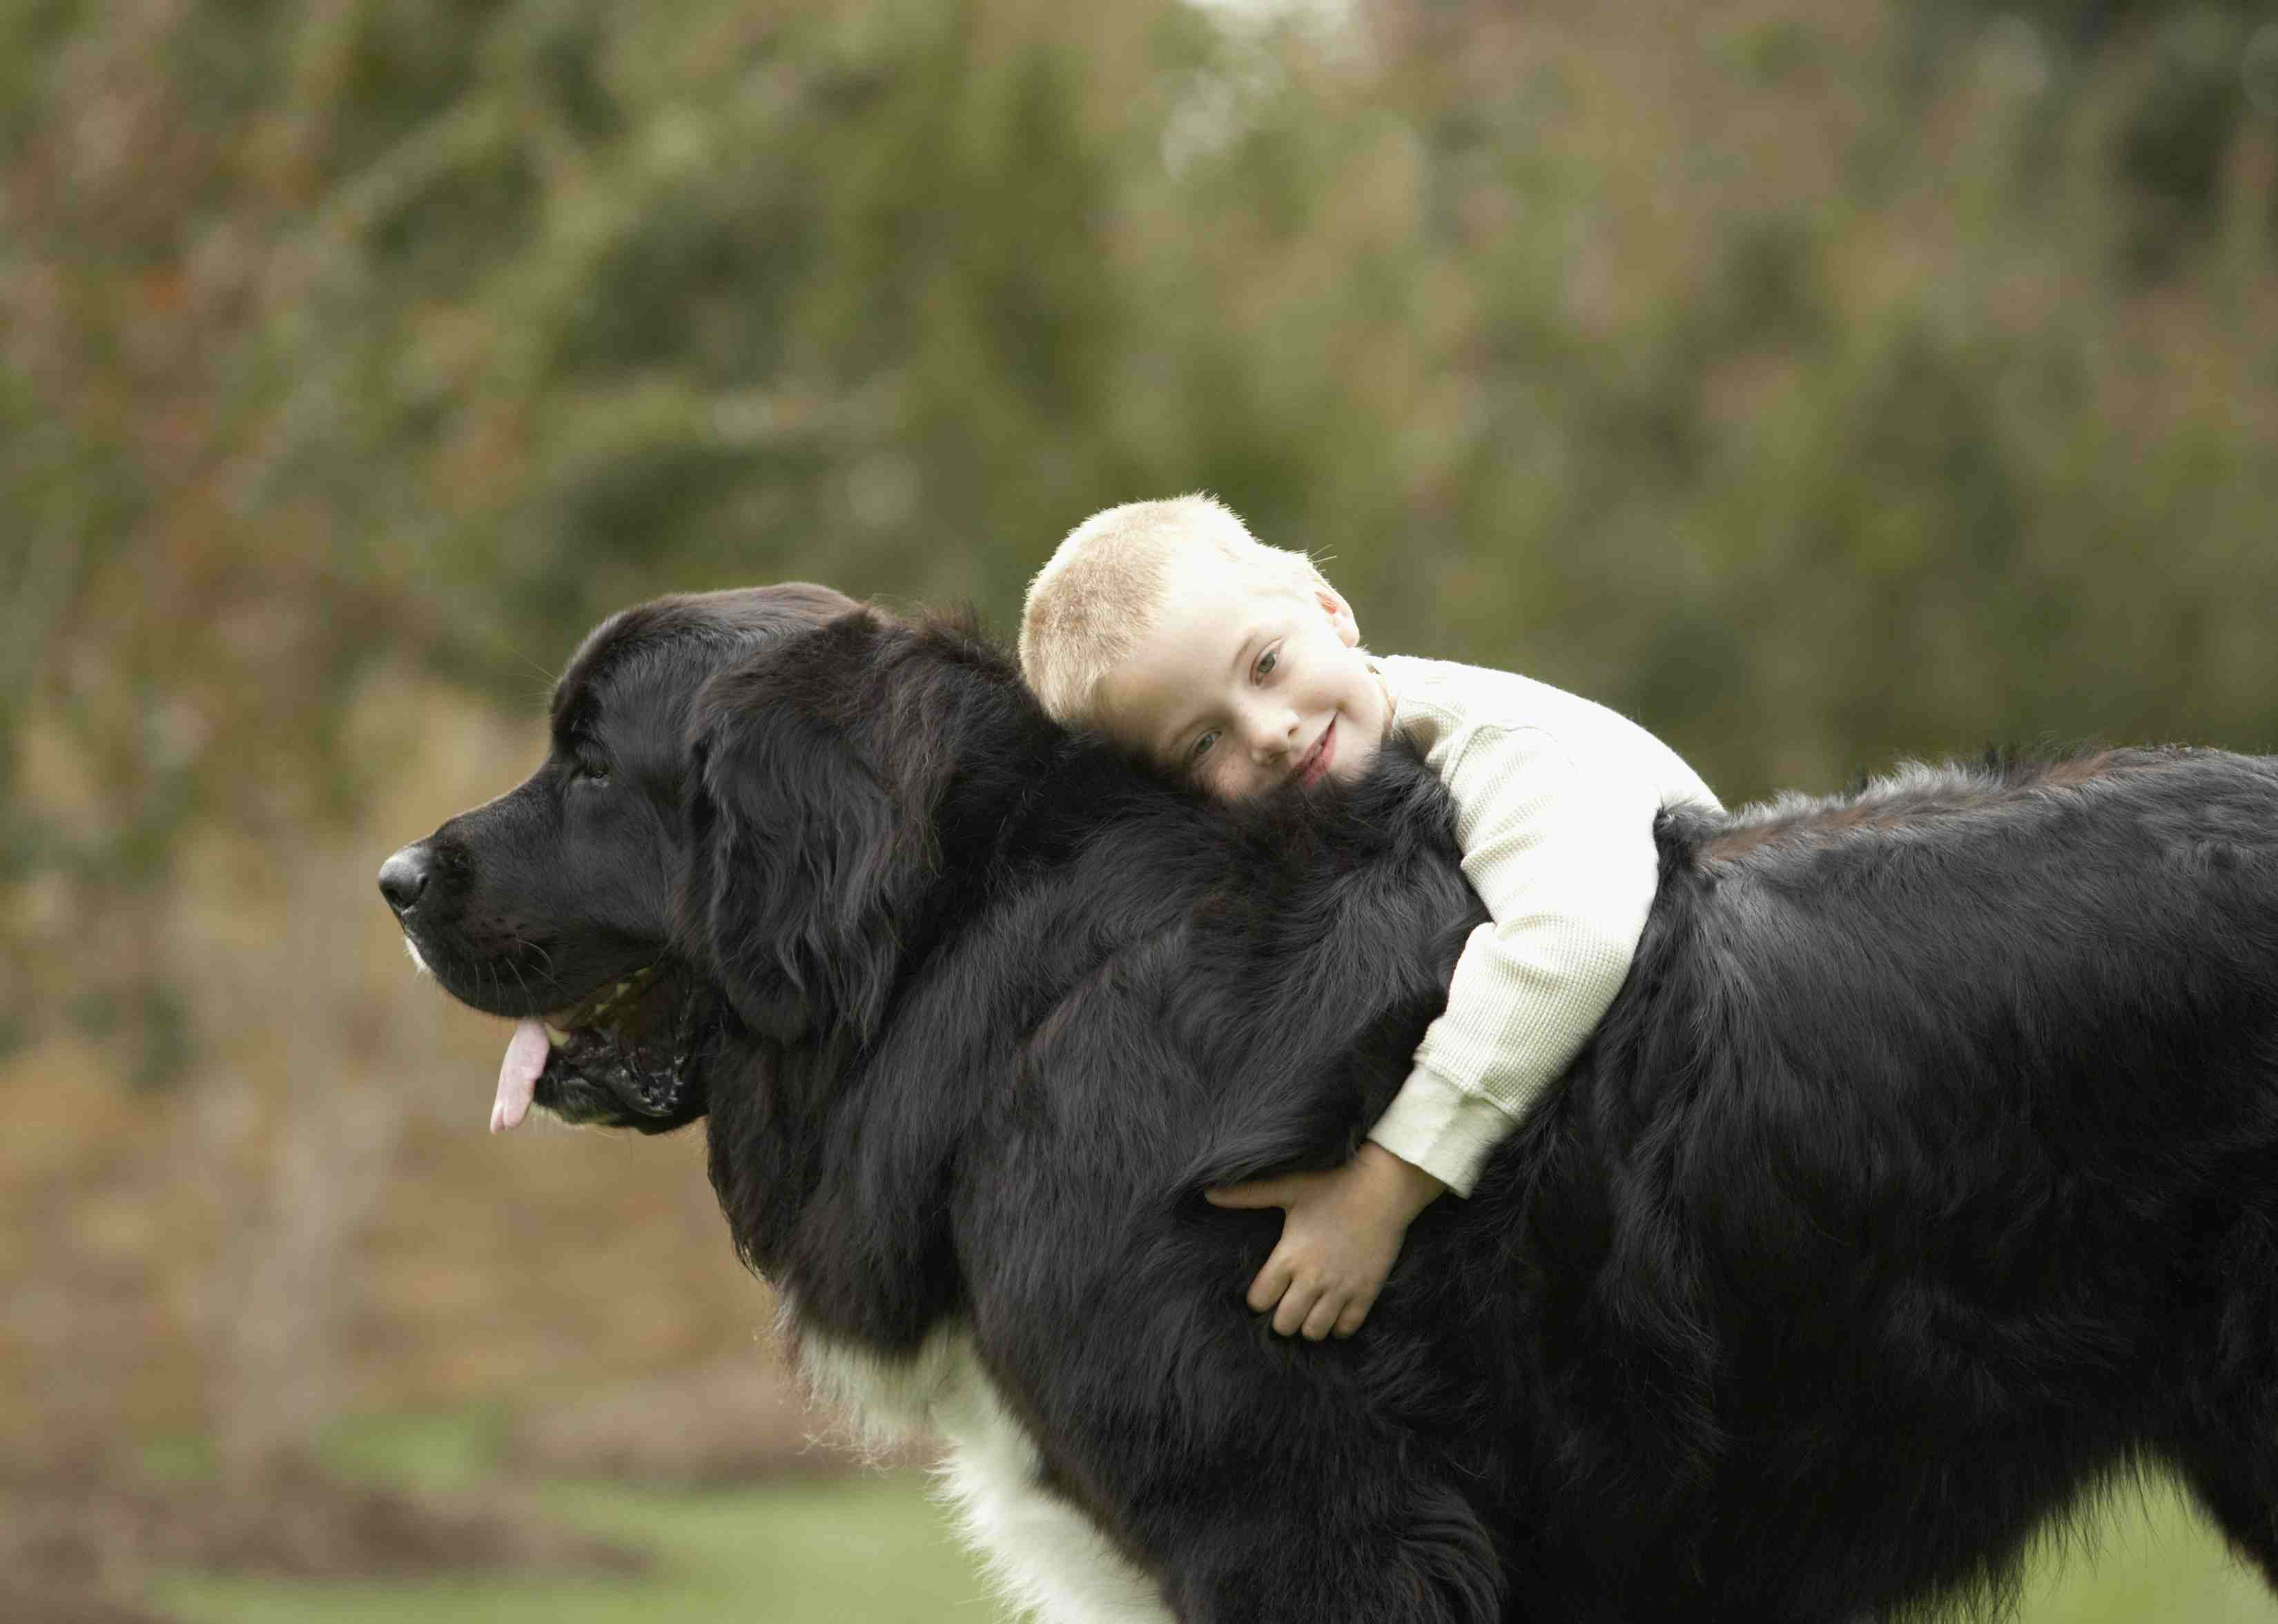 The Best Giant Dog Breeds That Make Great Pets